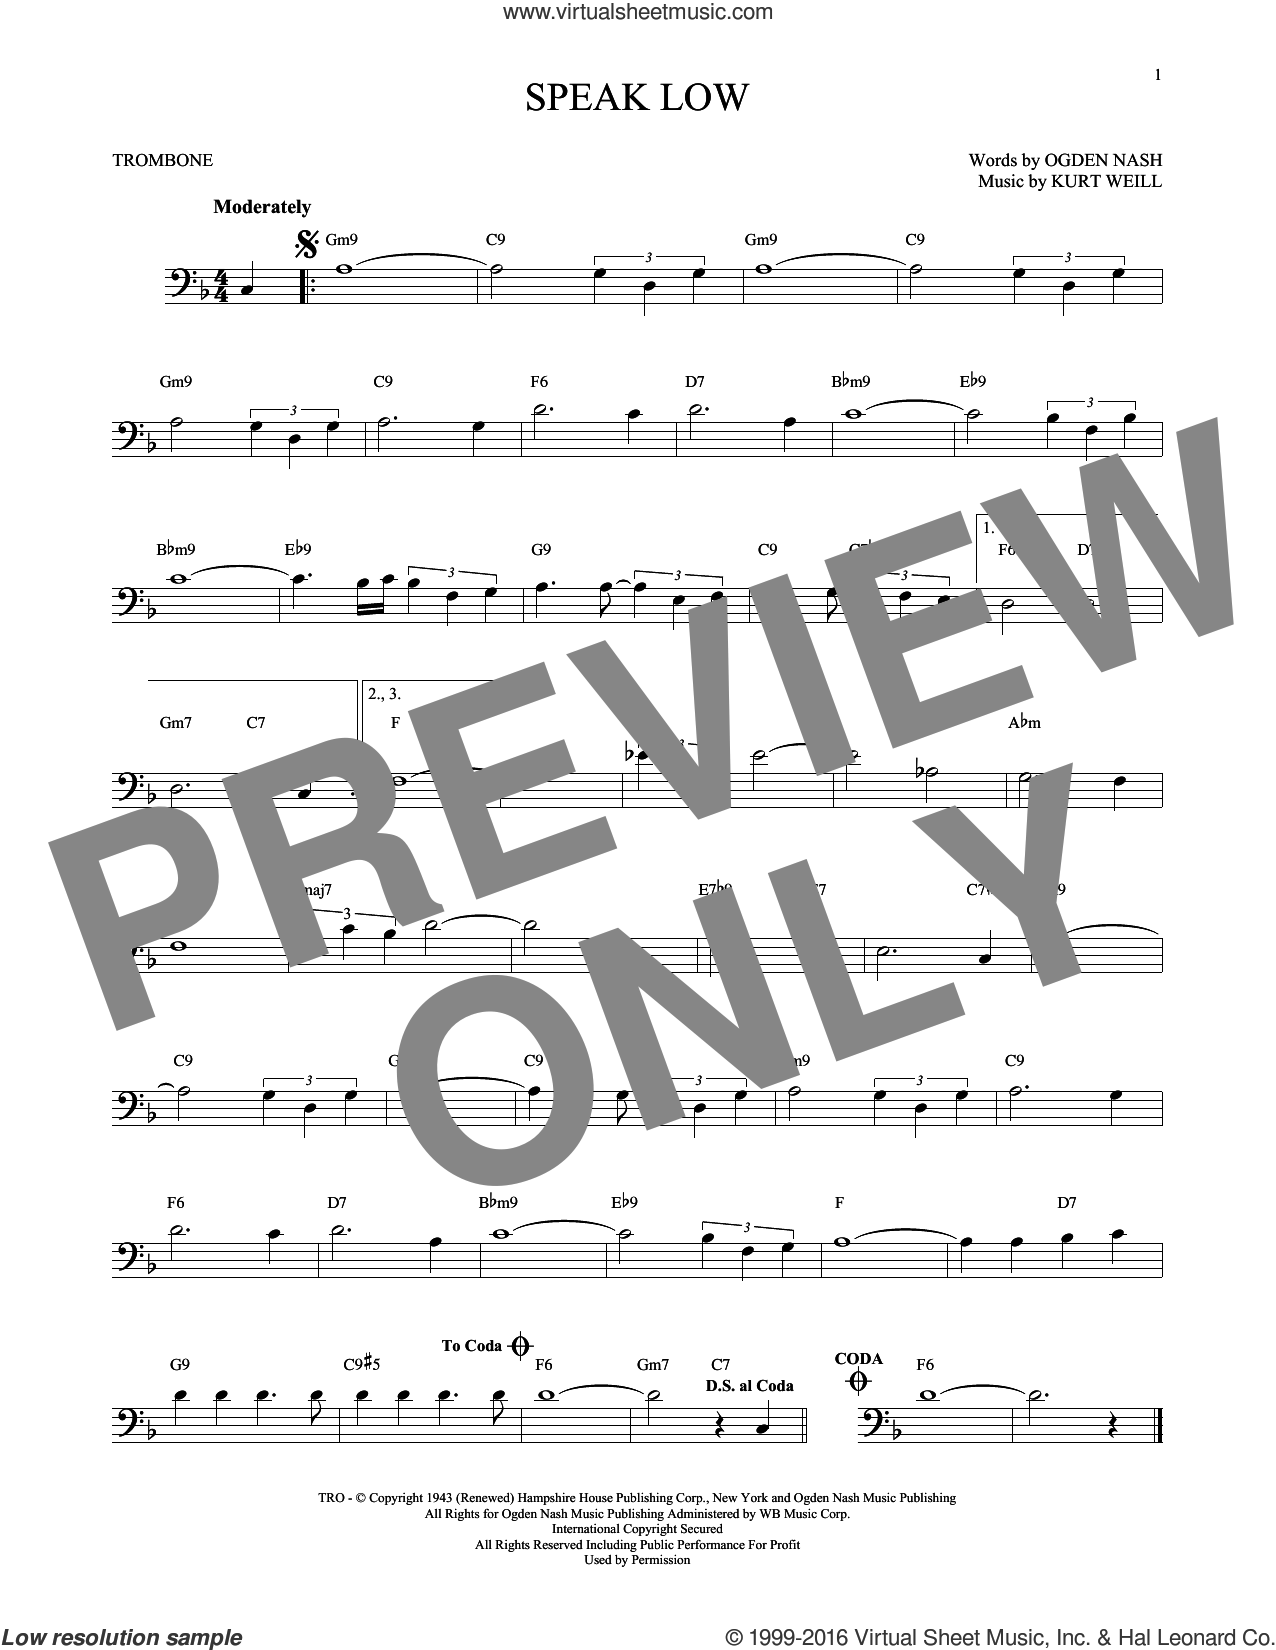 Speak Low sheet music for trombone solo by Kurt Weill and Ogden Nash, intermediate. Score Image Preview.